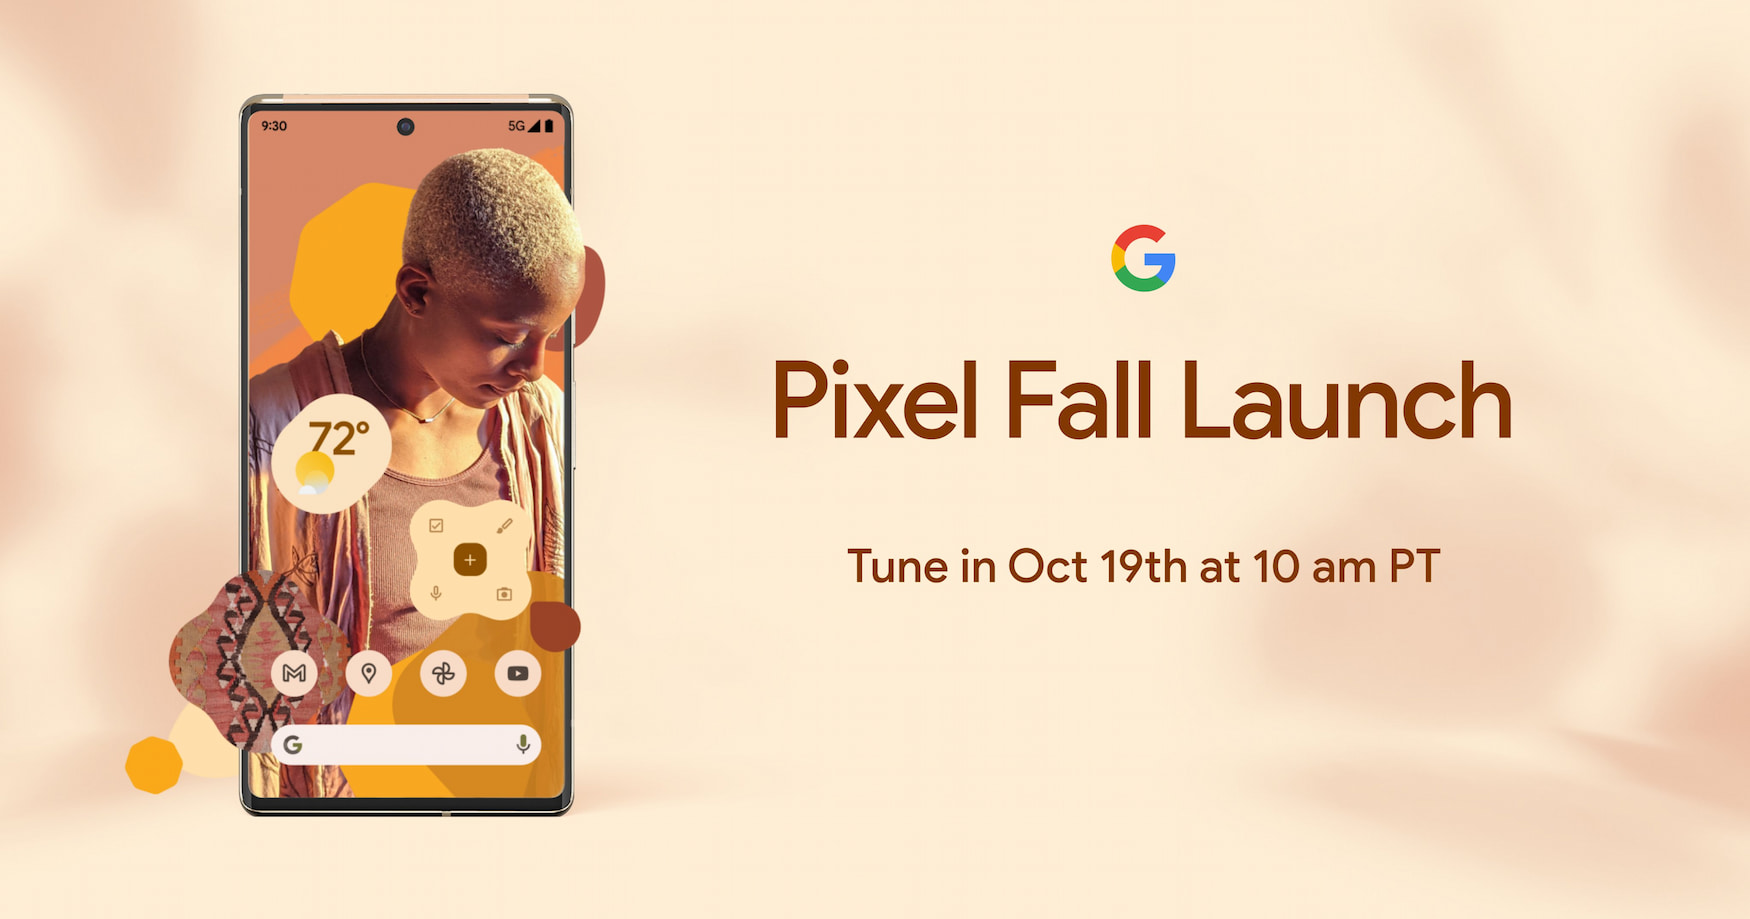 Save the Date: Pixel Fall Launch is officially Oct. 19